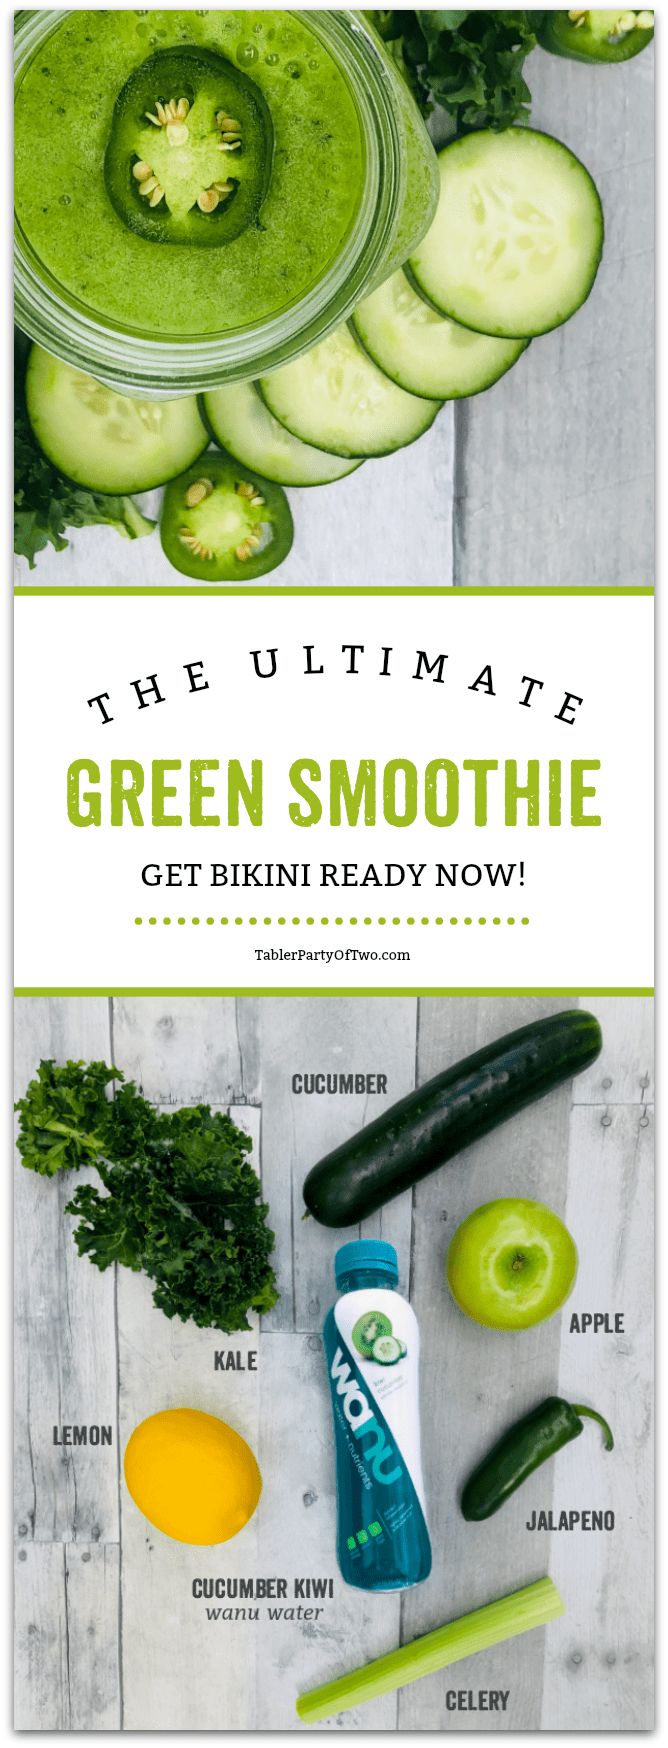 Ready to get BIKINI READY? Start your day with this delicious, nutrient-dense green smoothie and you'll be ready in no time! This smoothies is chock full of vitamins, fiber and antioxidants. And it's SO DELISH! #ad TablerPartyofTwo.com